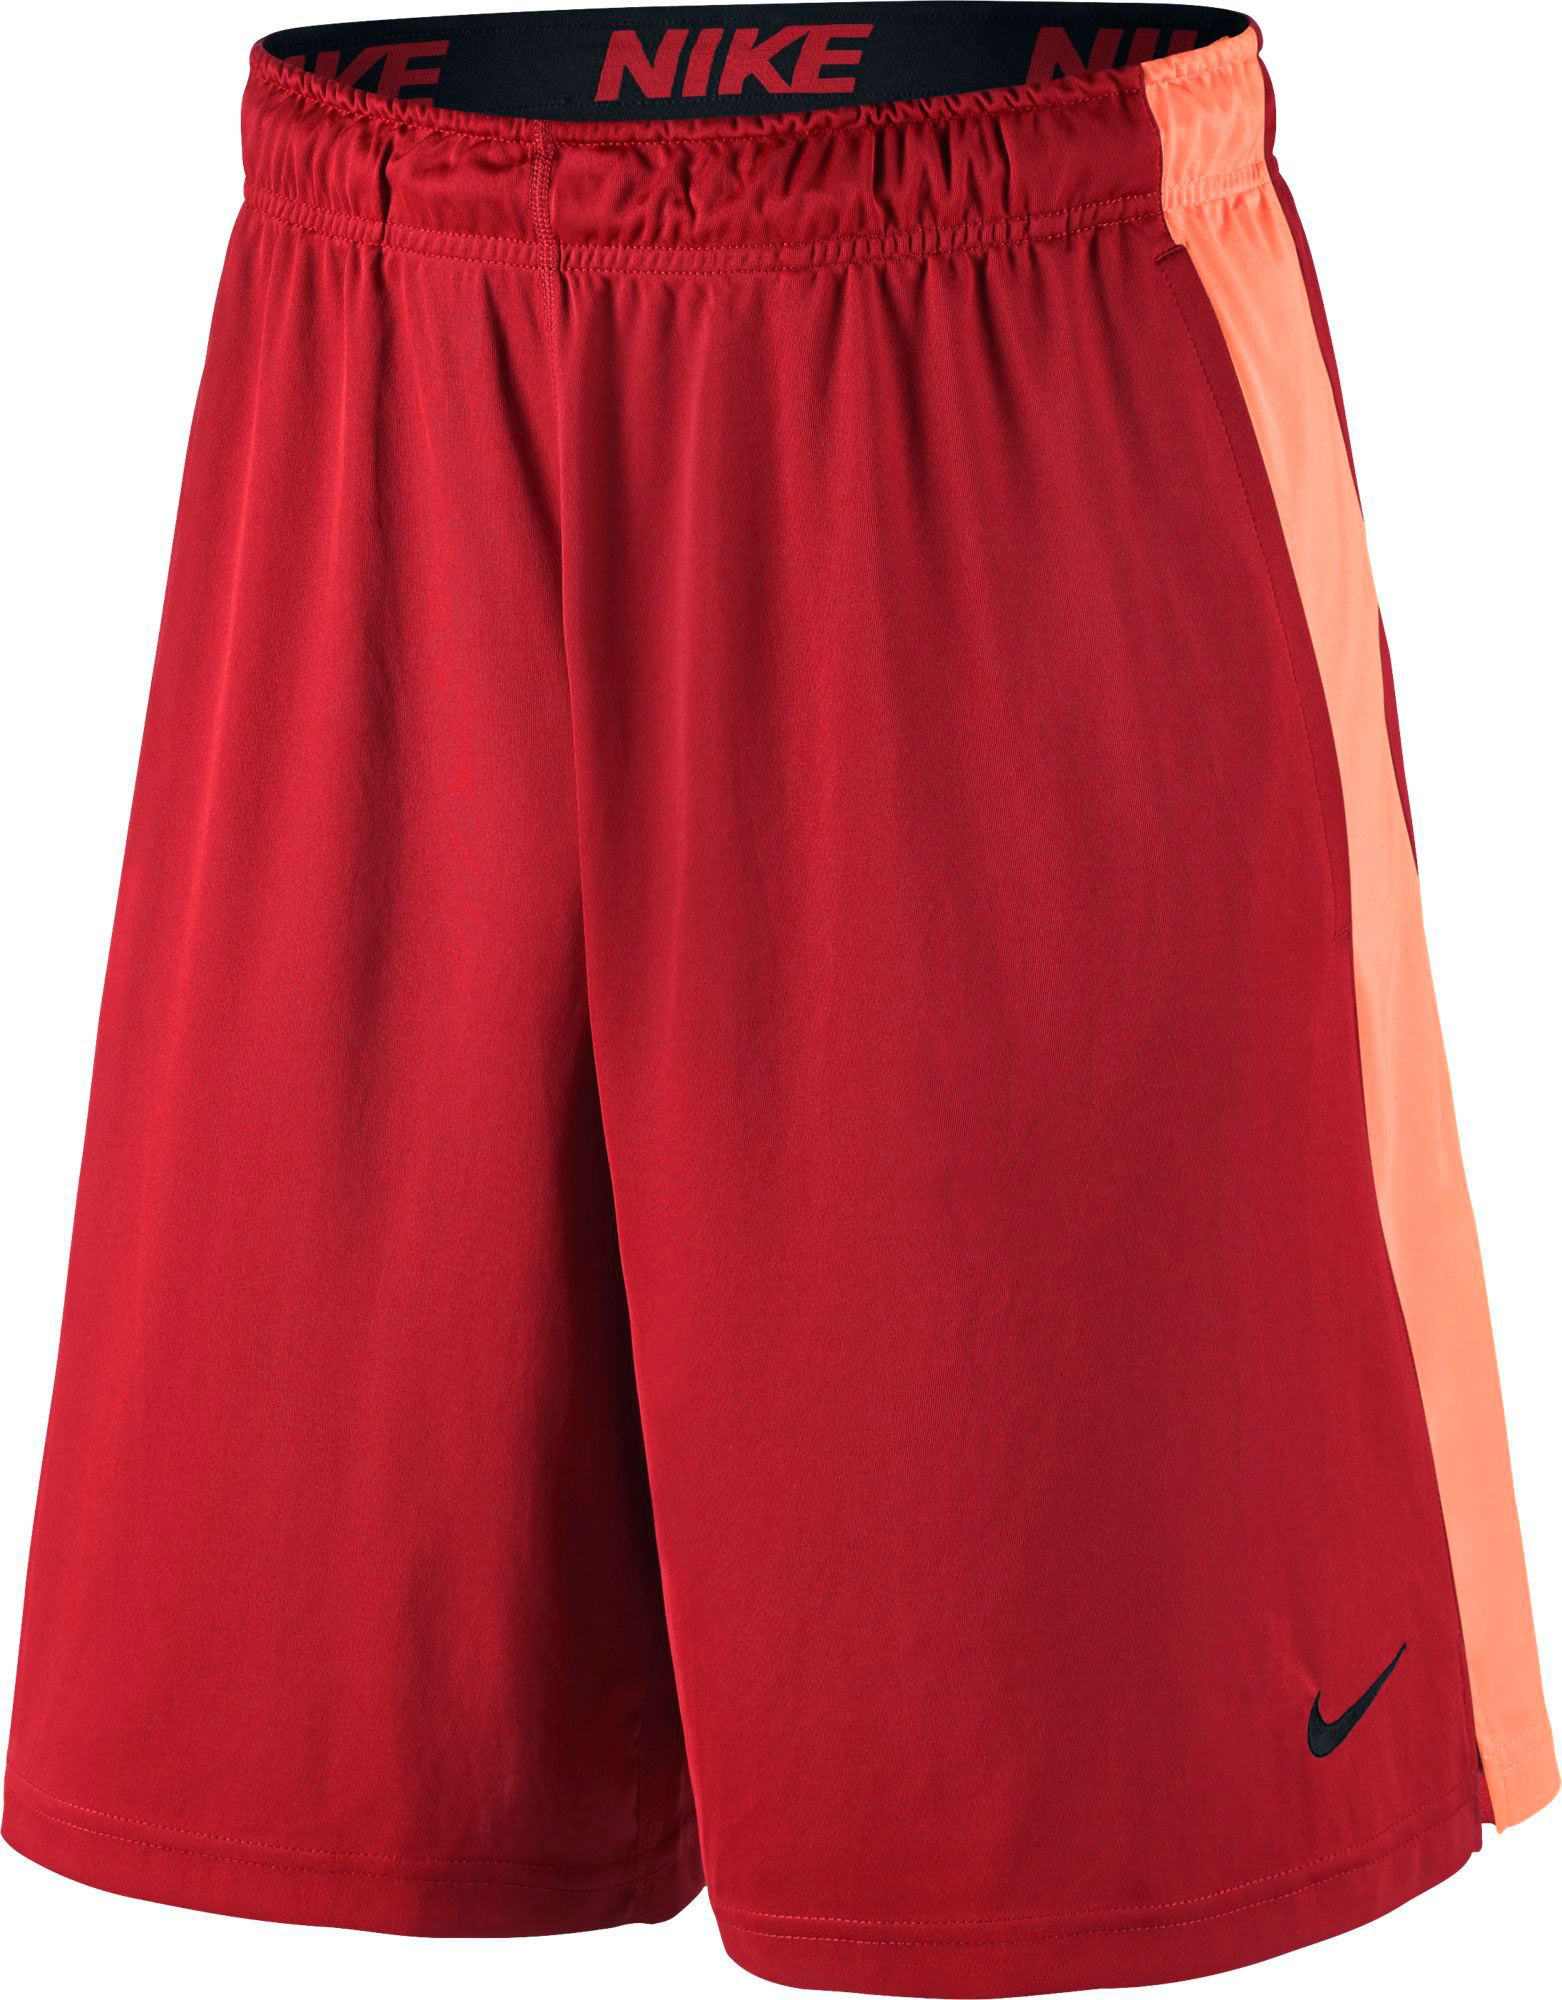 Men's Red Athletic Shorts | DICK'S Sporting Goods